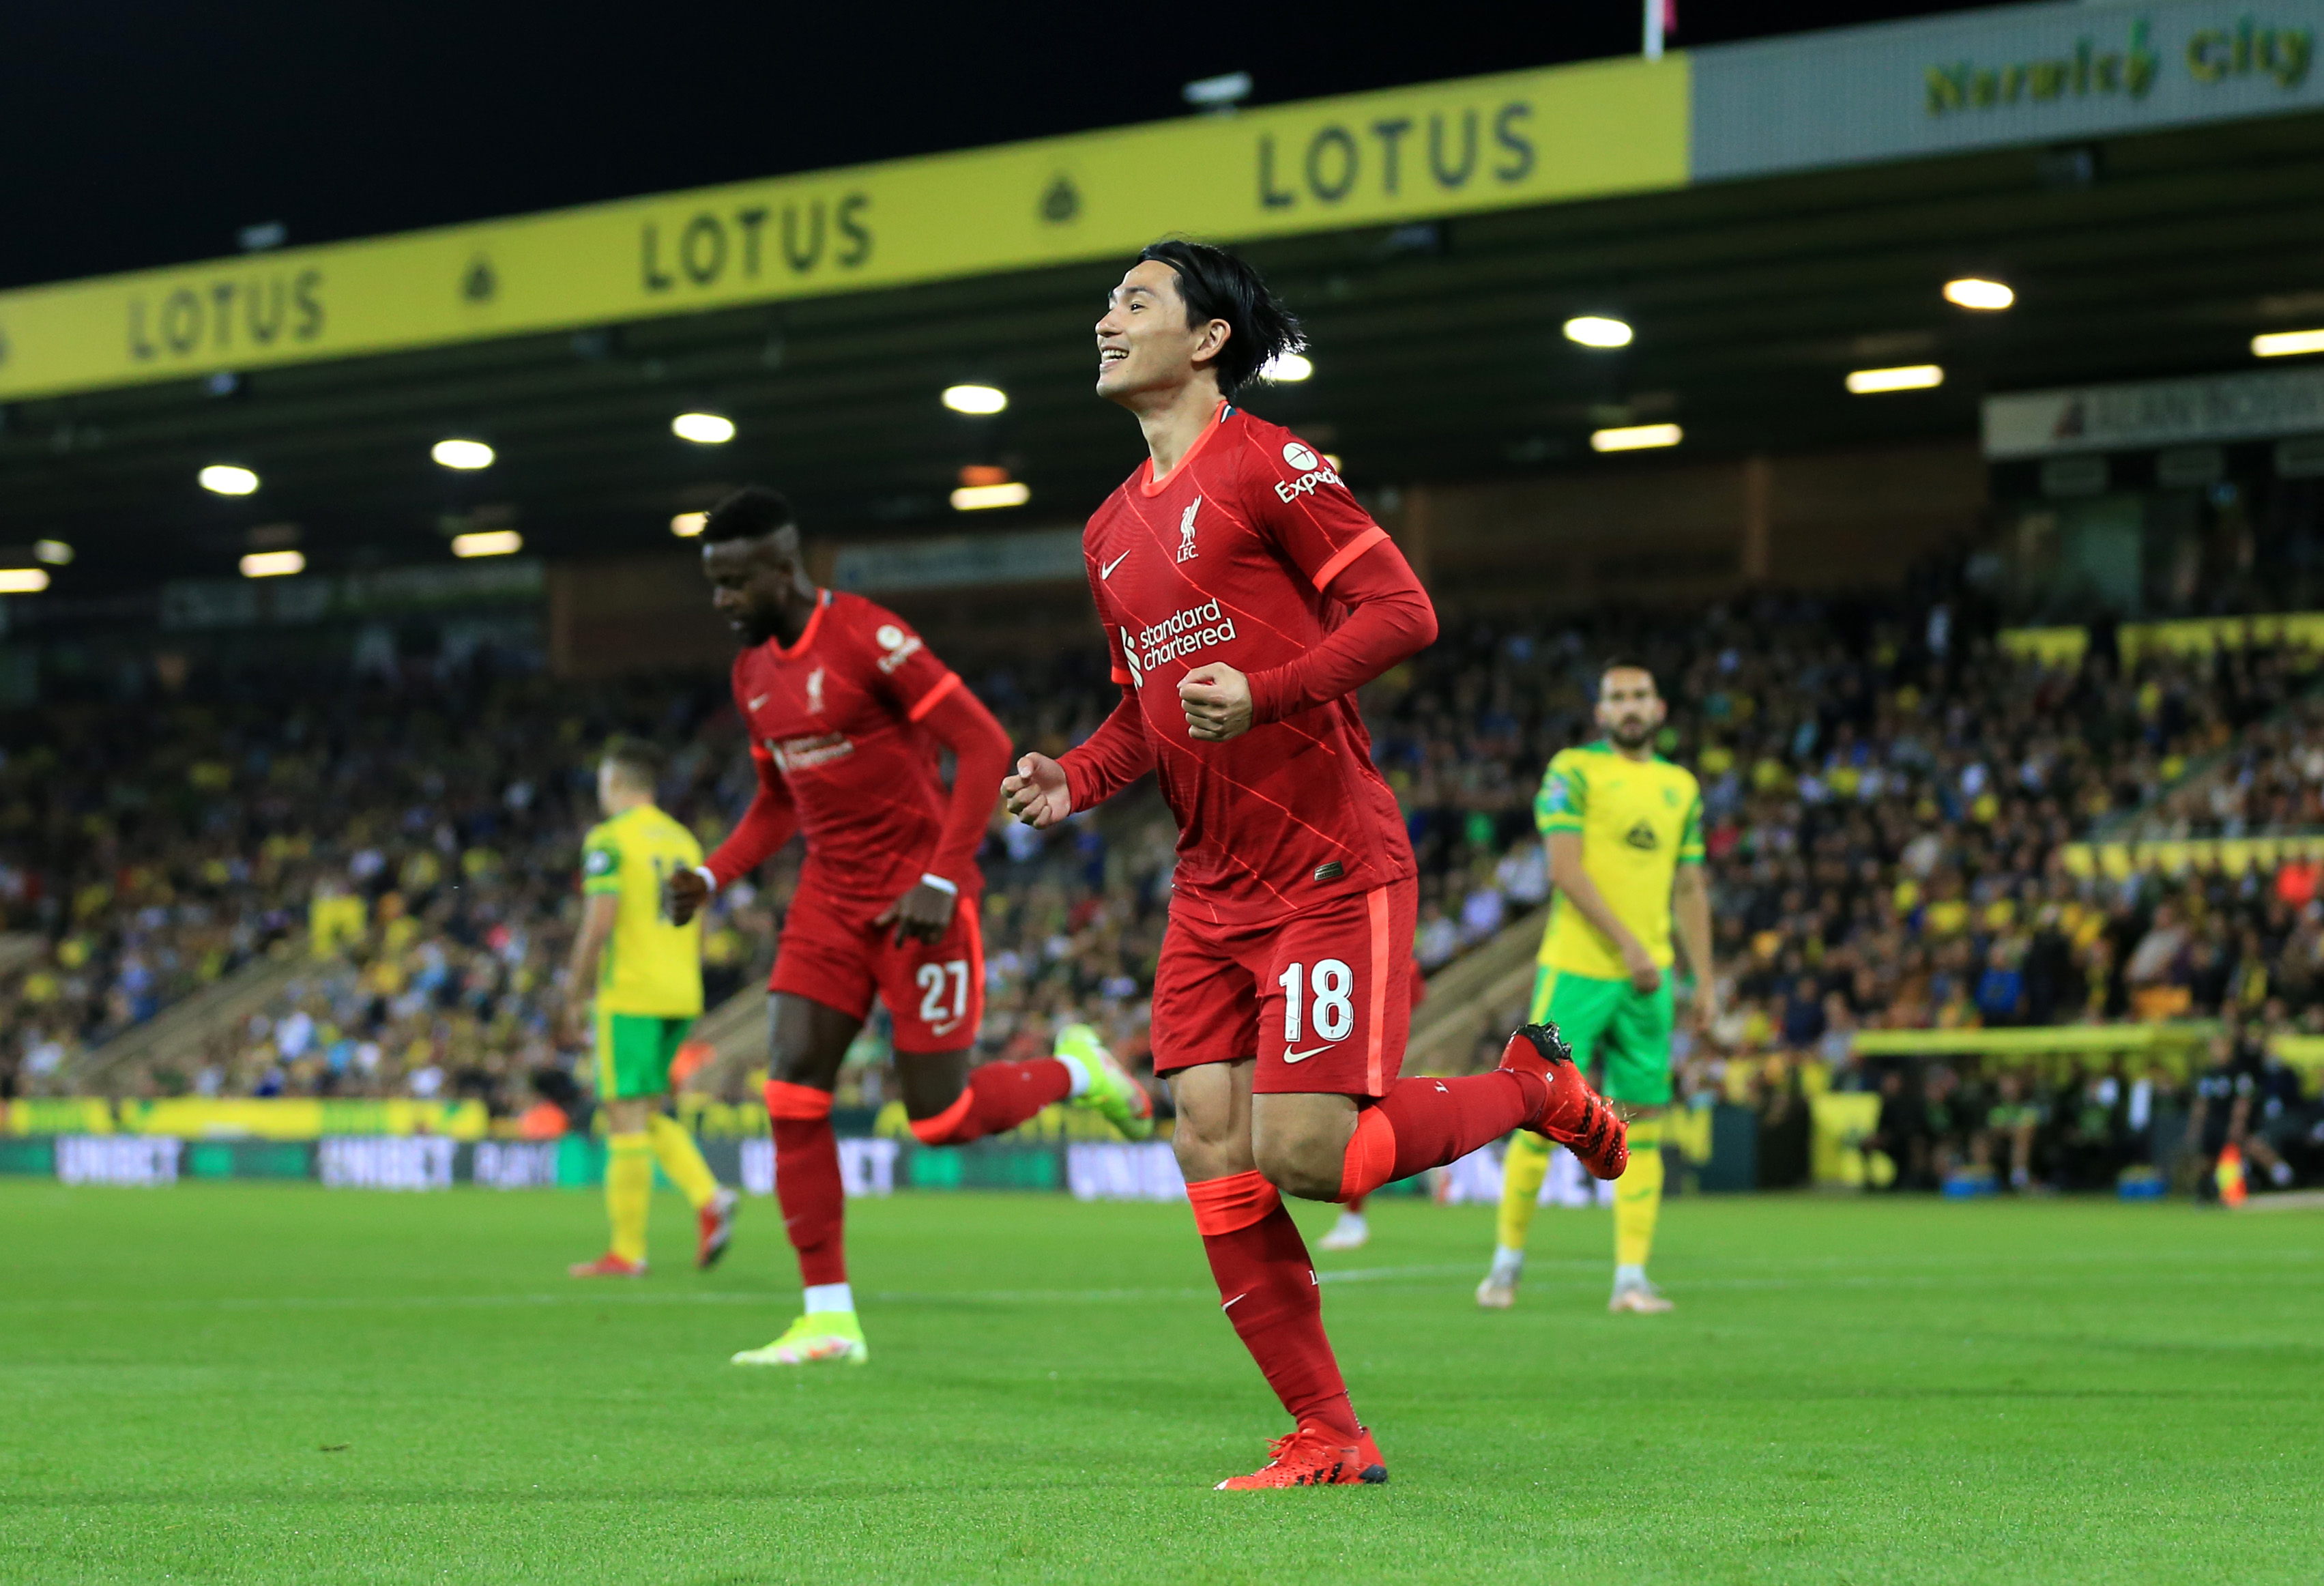 Norwich City v Liverpool - Carabao Cup Third Round